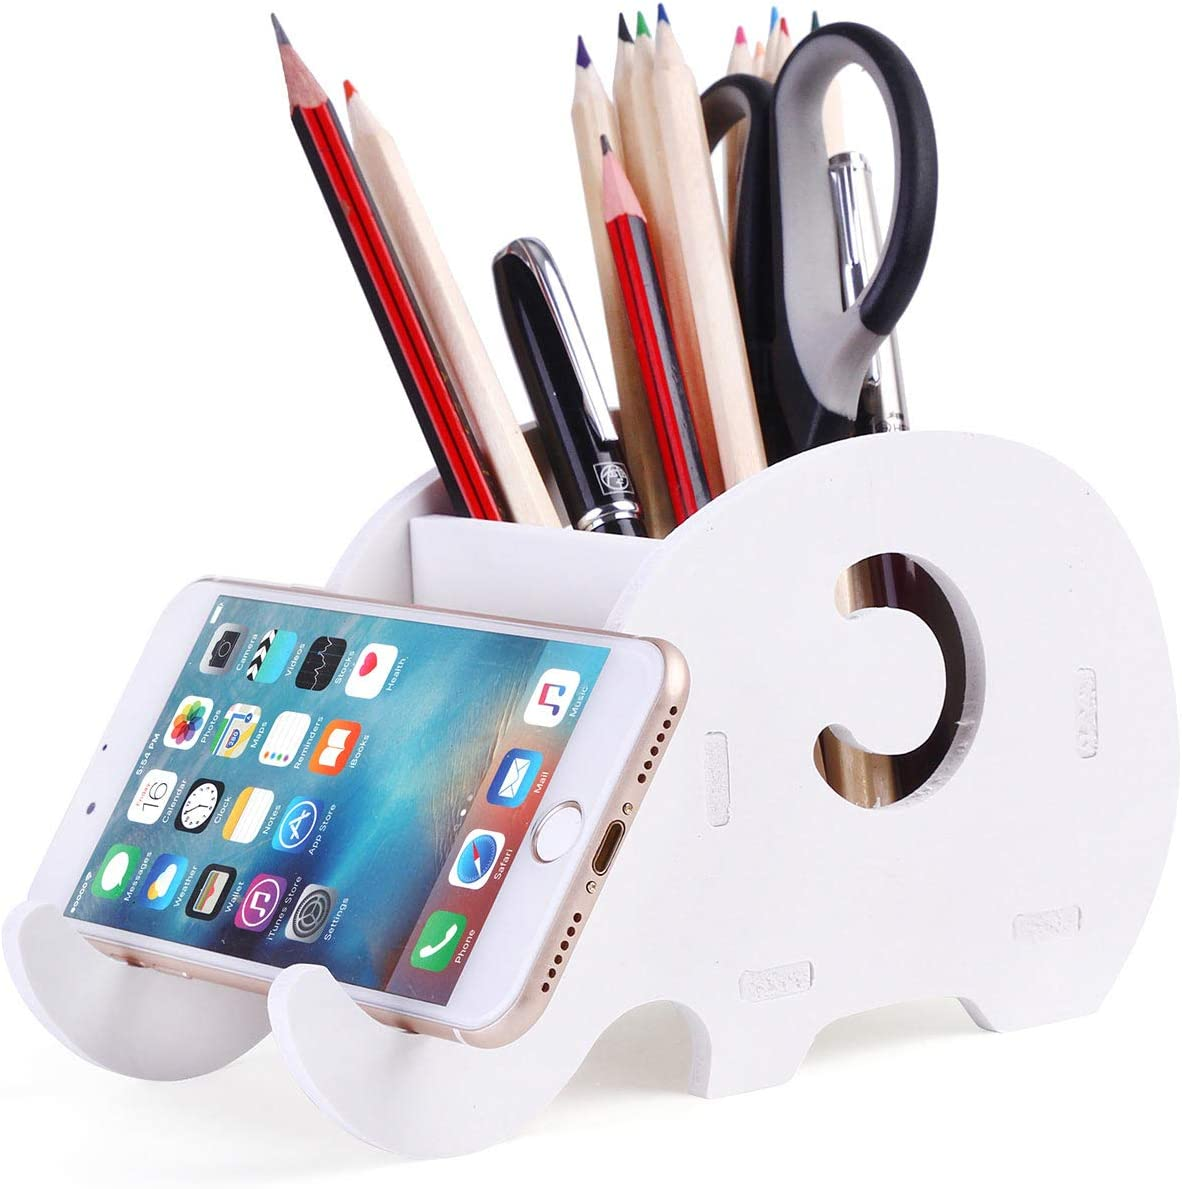 COOLBROS Elephant Pencil Holder With Phone Holder Desk Organizer Desktop Pen Pencil Mobile Phone Bracket Stand Storage Pot Holder Container Stationery Box Organizer (White)